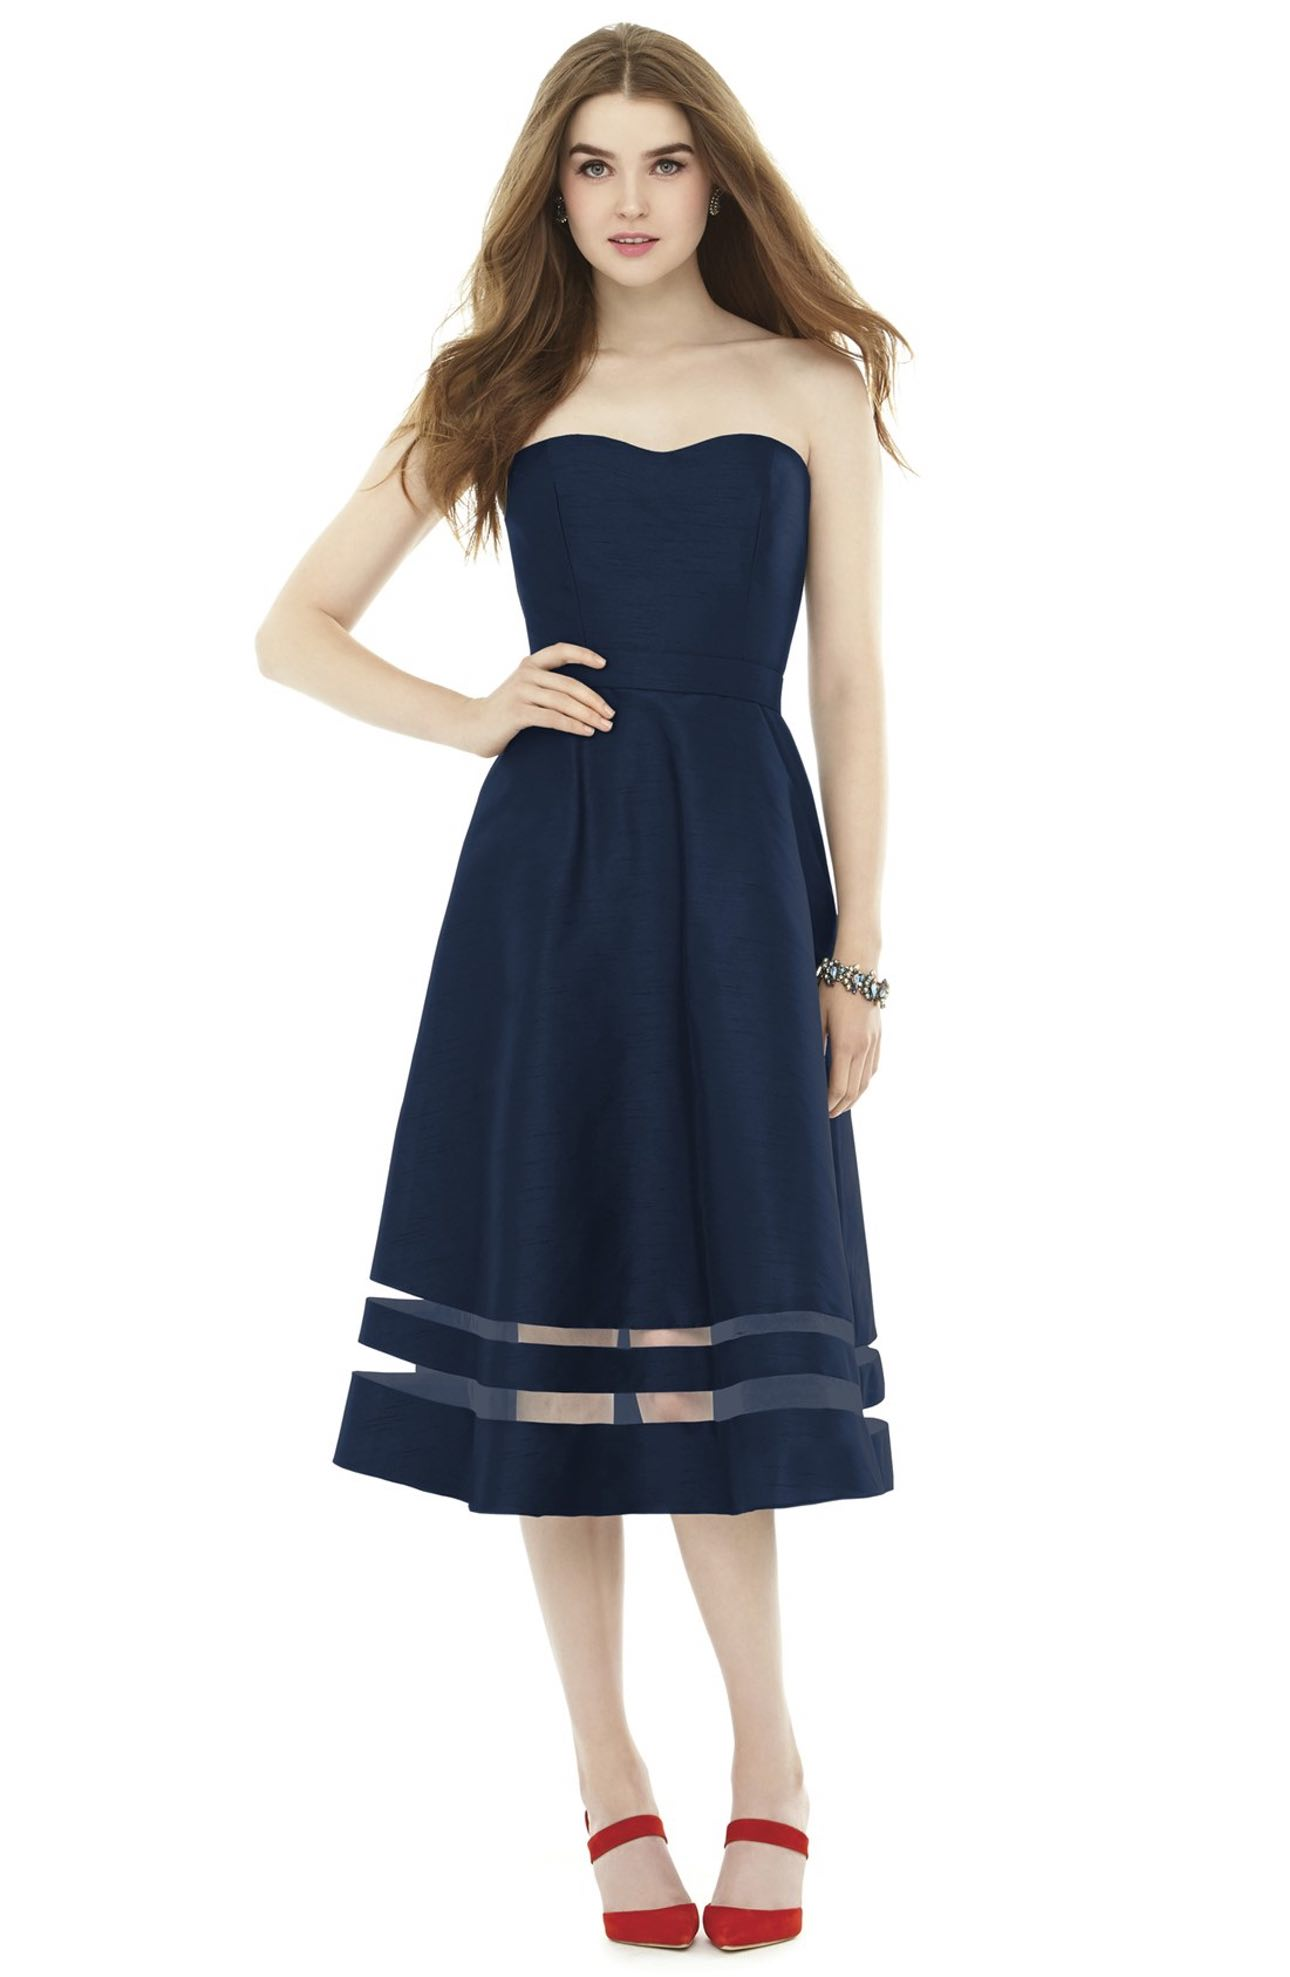 Alfred Sung, Illusion Stripe Strapless A-Line Midi Dress - $198.00. (Image: Nordstrom)